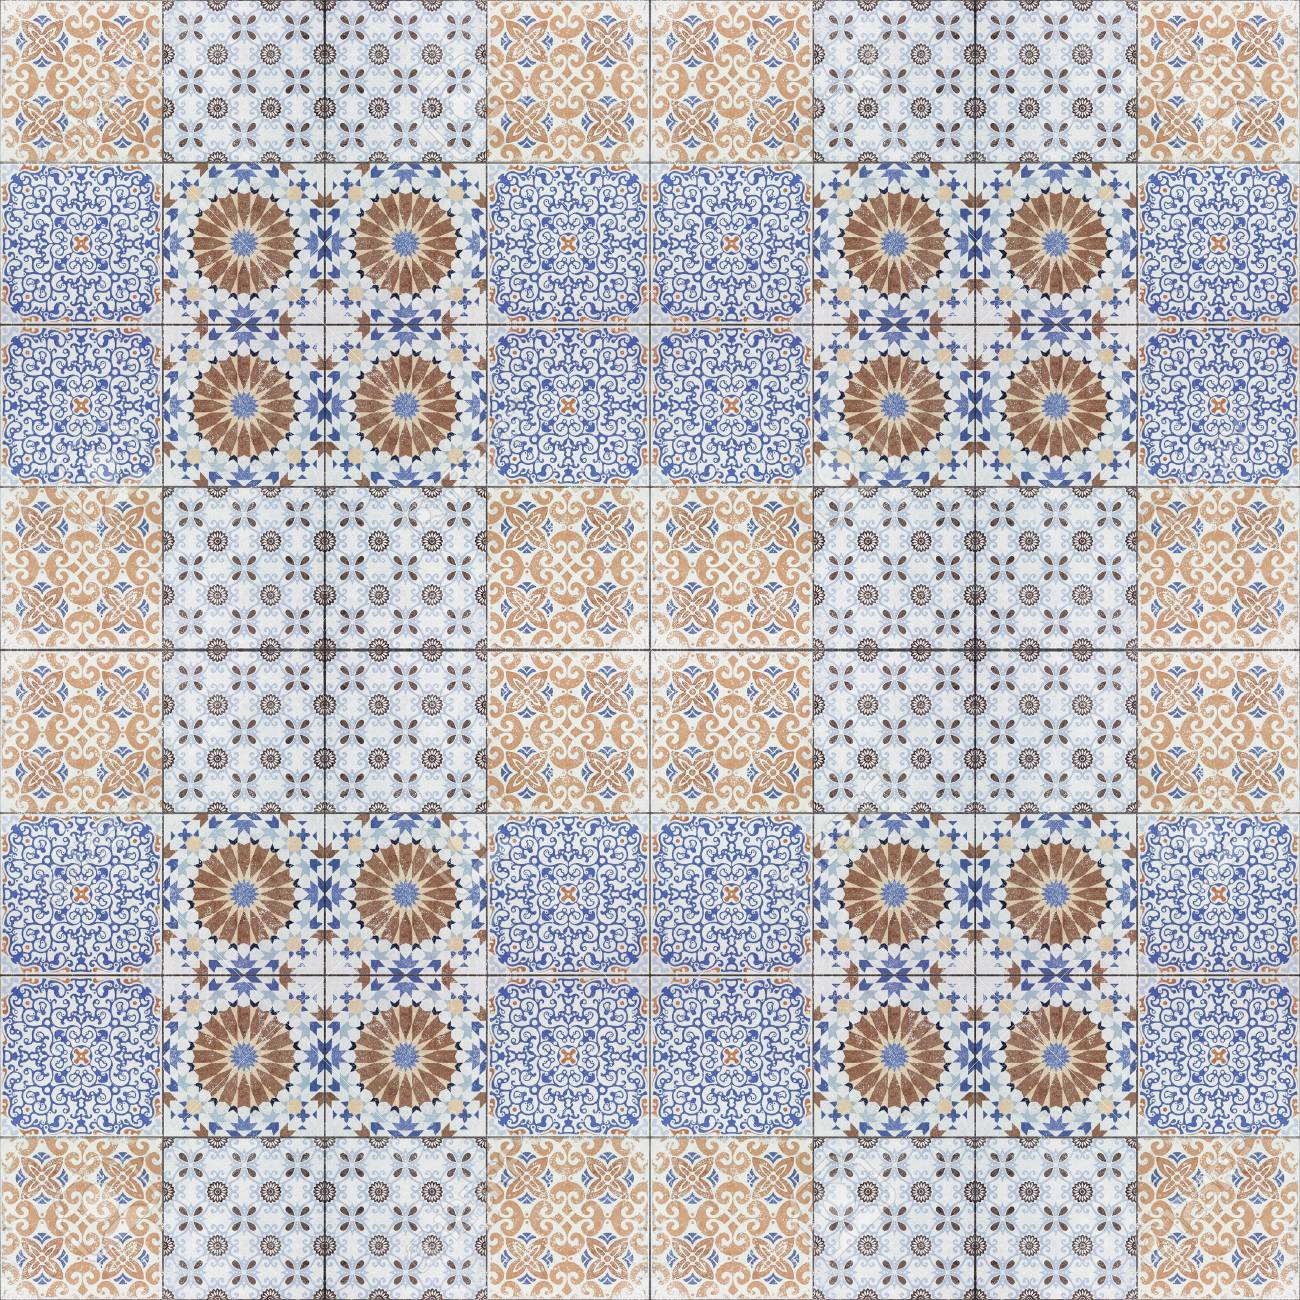 Beautiful Old Ceramic Tiles Patterns In The Park Public Stock Photo